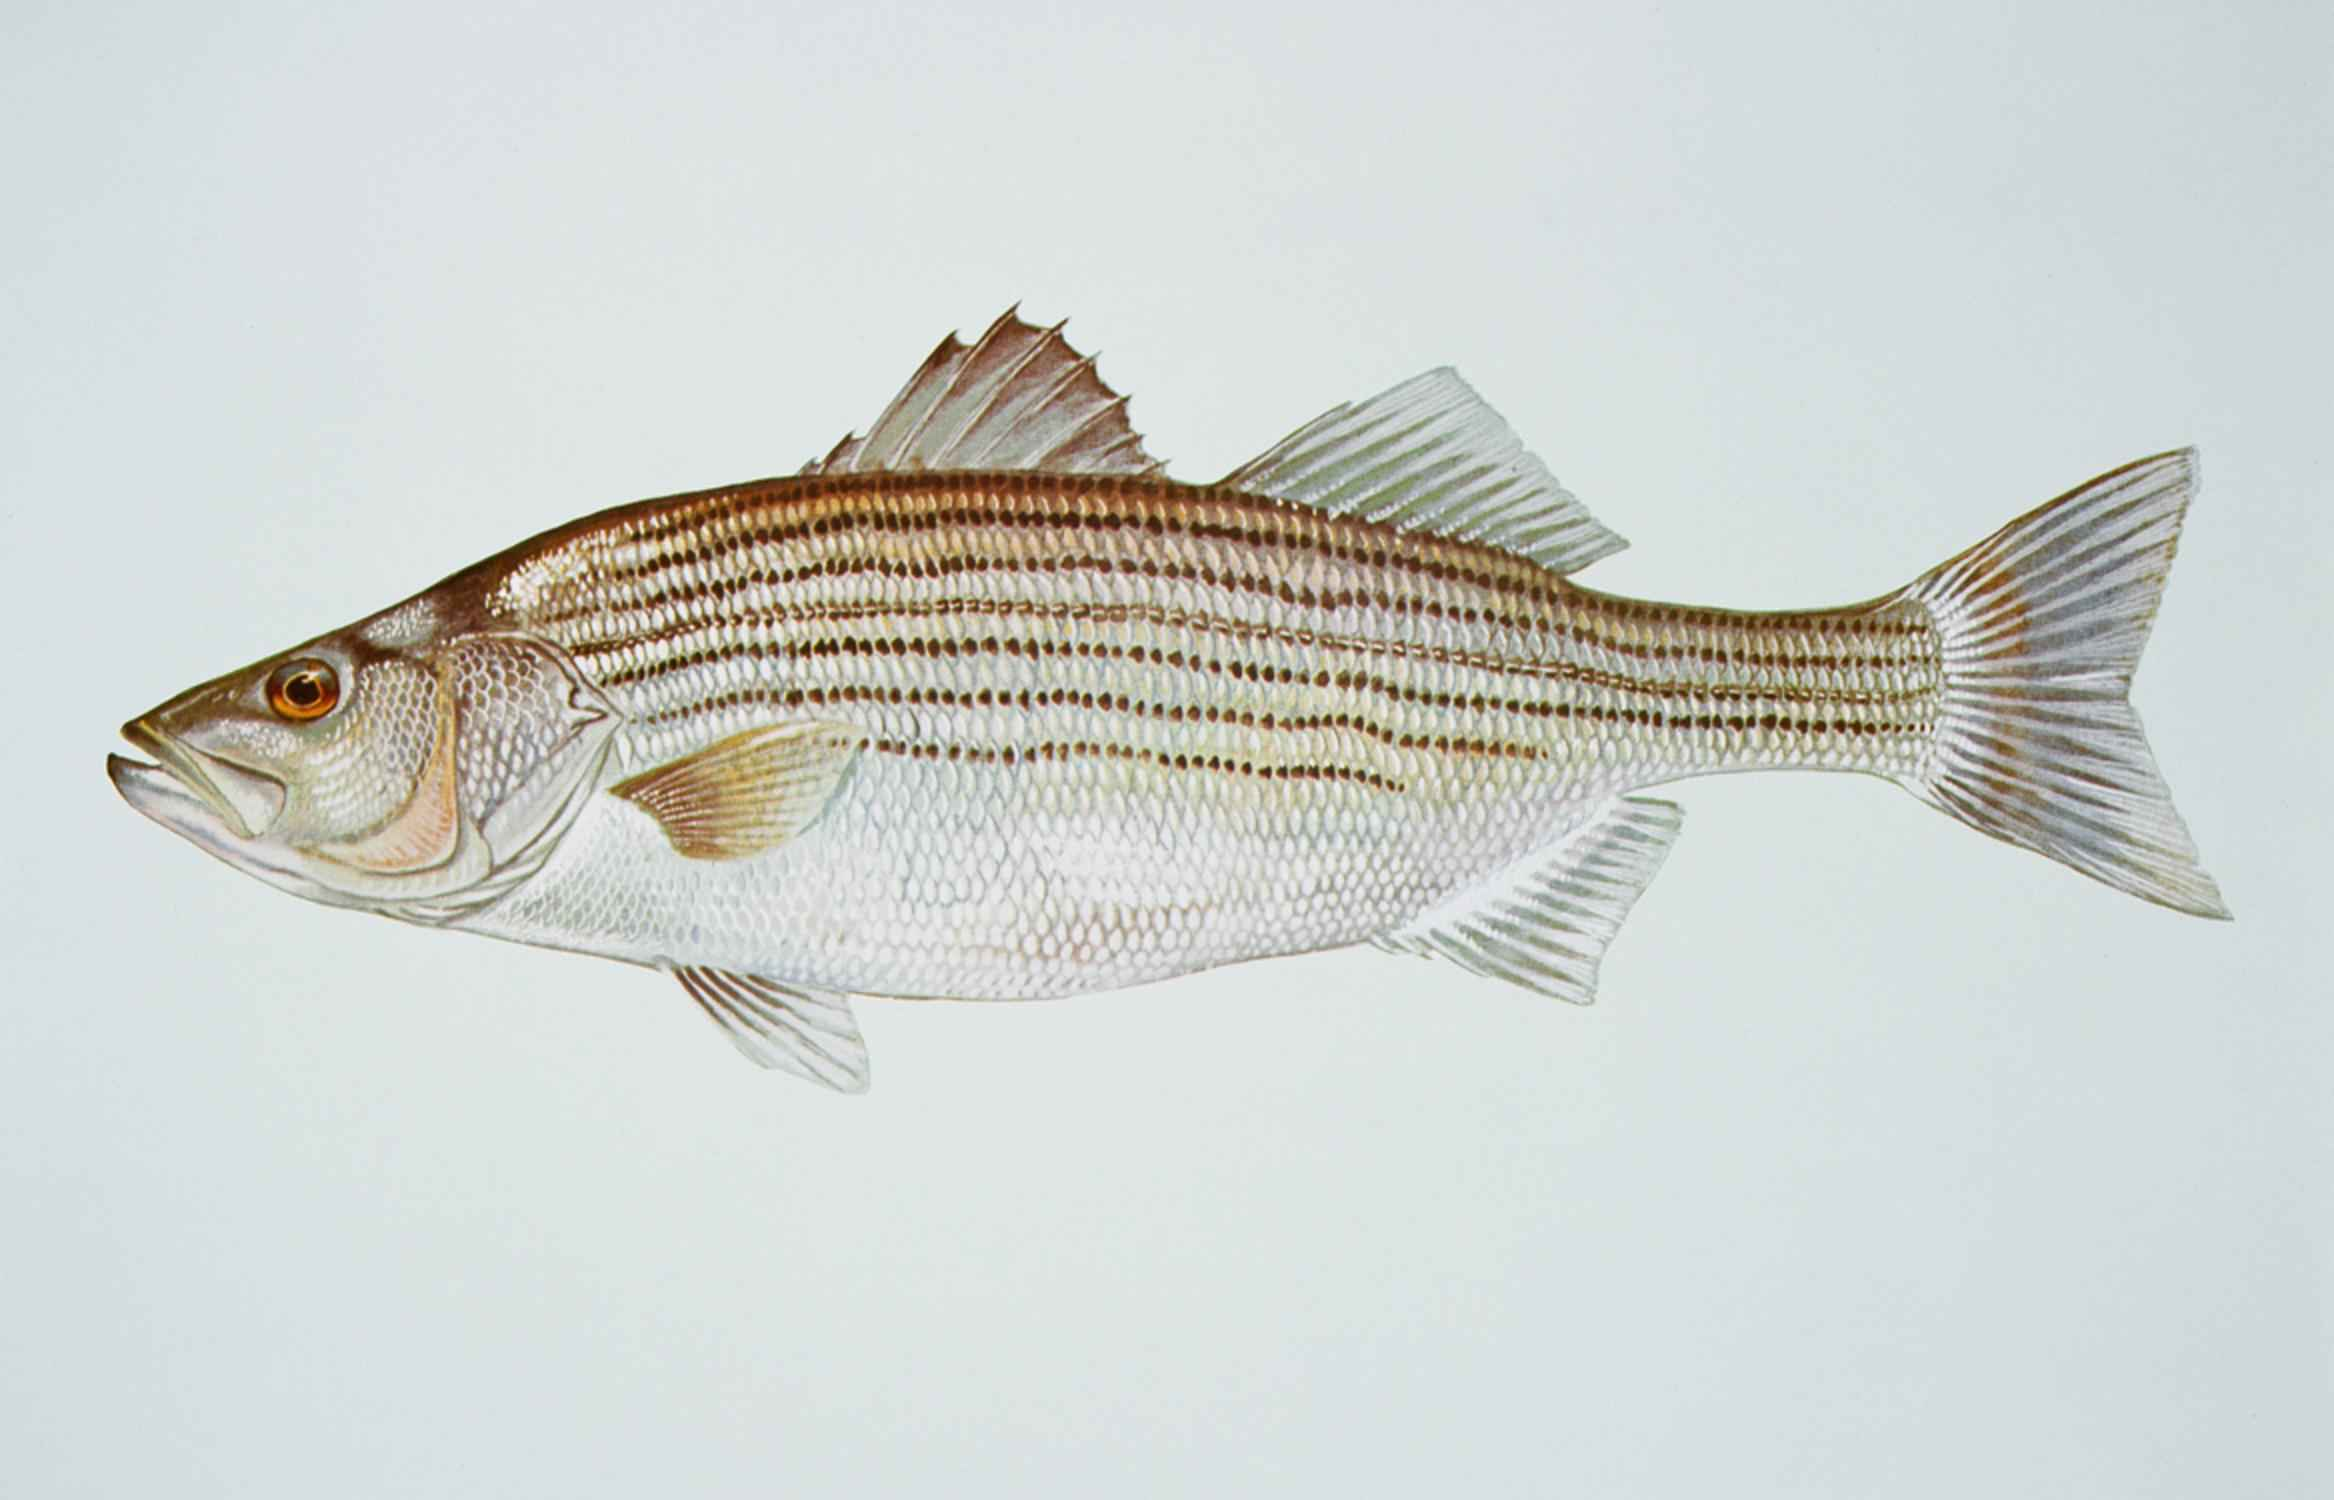 File:Striped bass morone saxatilis fish.jpg - Wikimedia Commons